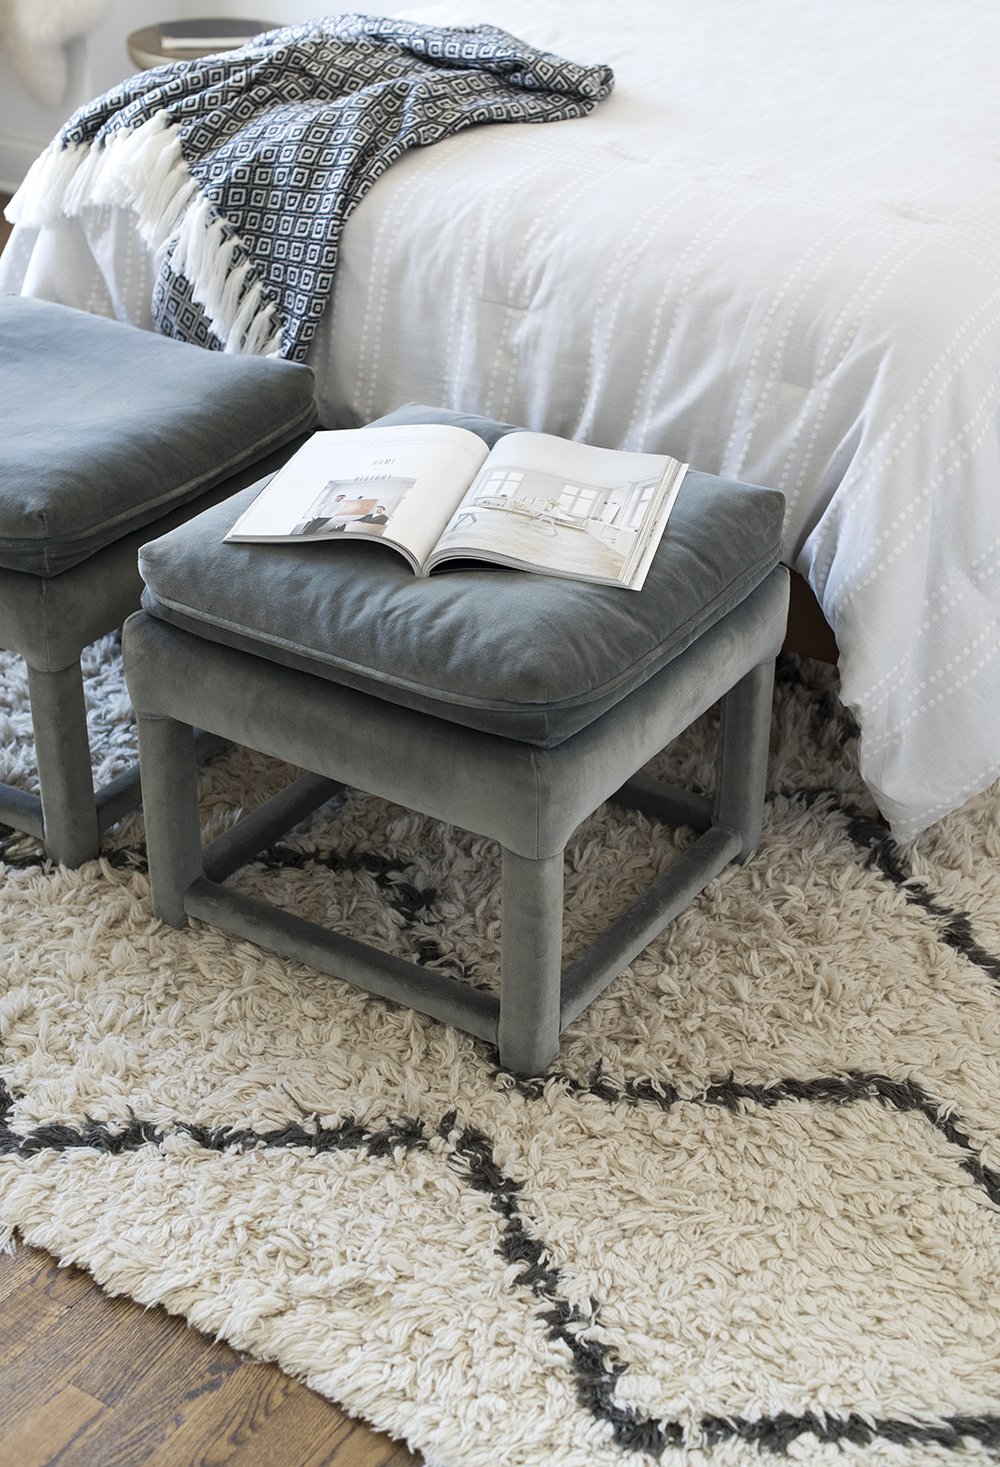 Roundup : Ottomans & Benches for the End of Your Bed - roomfortuesday.com